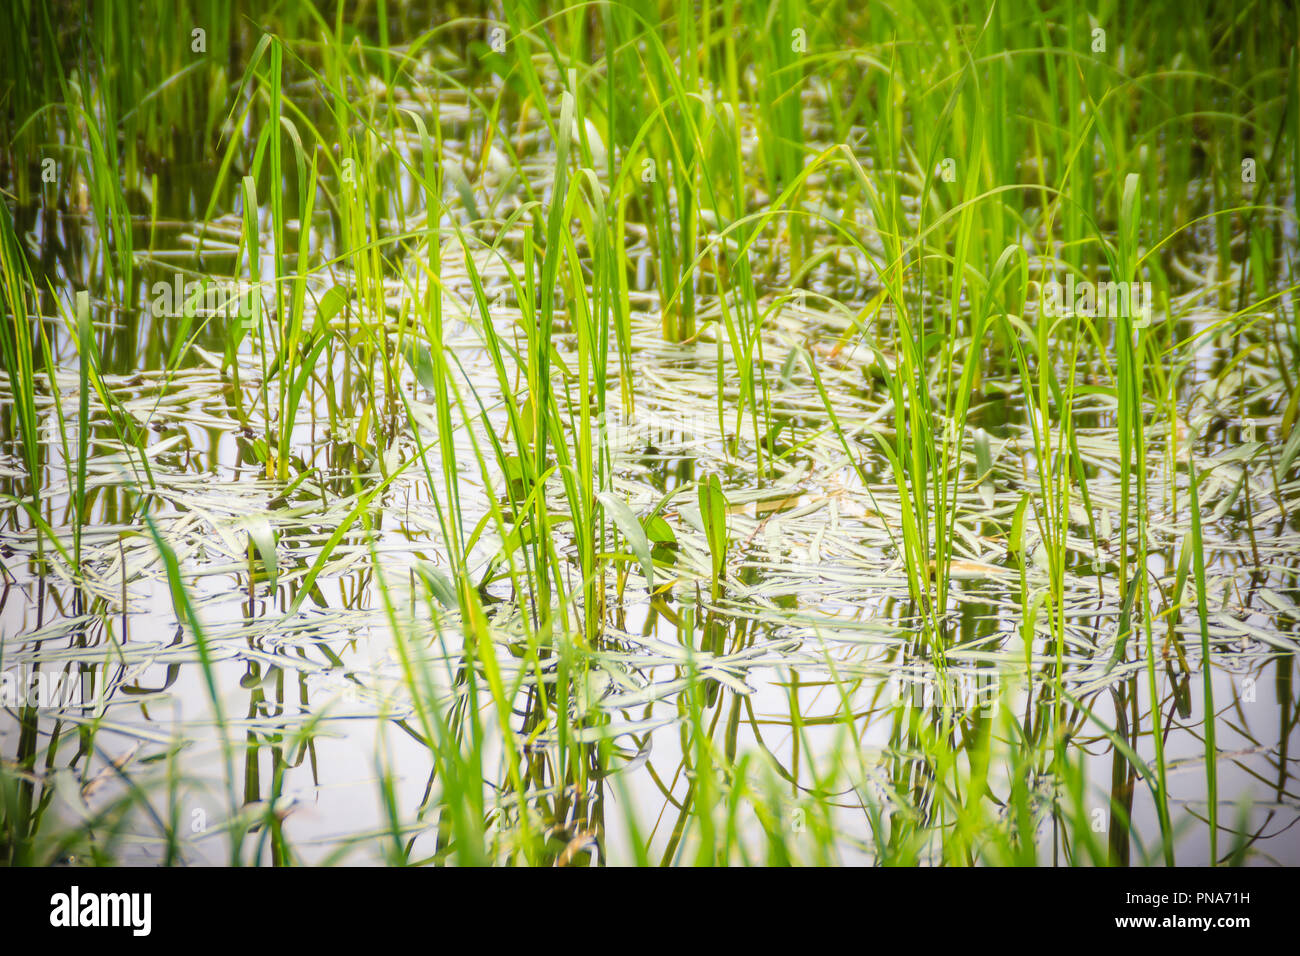 Monochoria vaginalis weed grass, a serious weed in rice fields. It is a species of flowering plant in the water hyacinth family and also known as hear Stock Photo